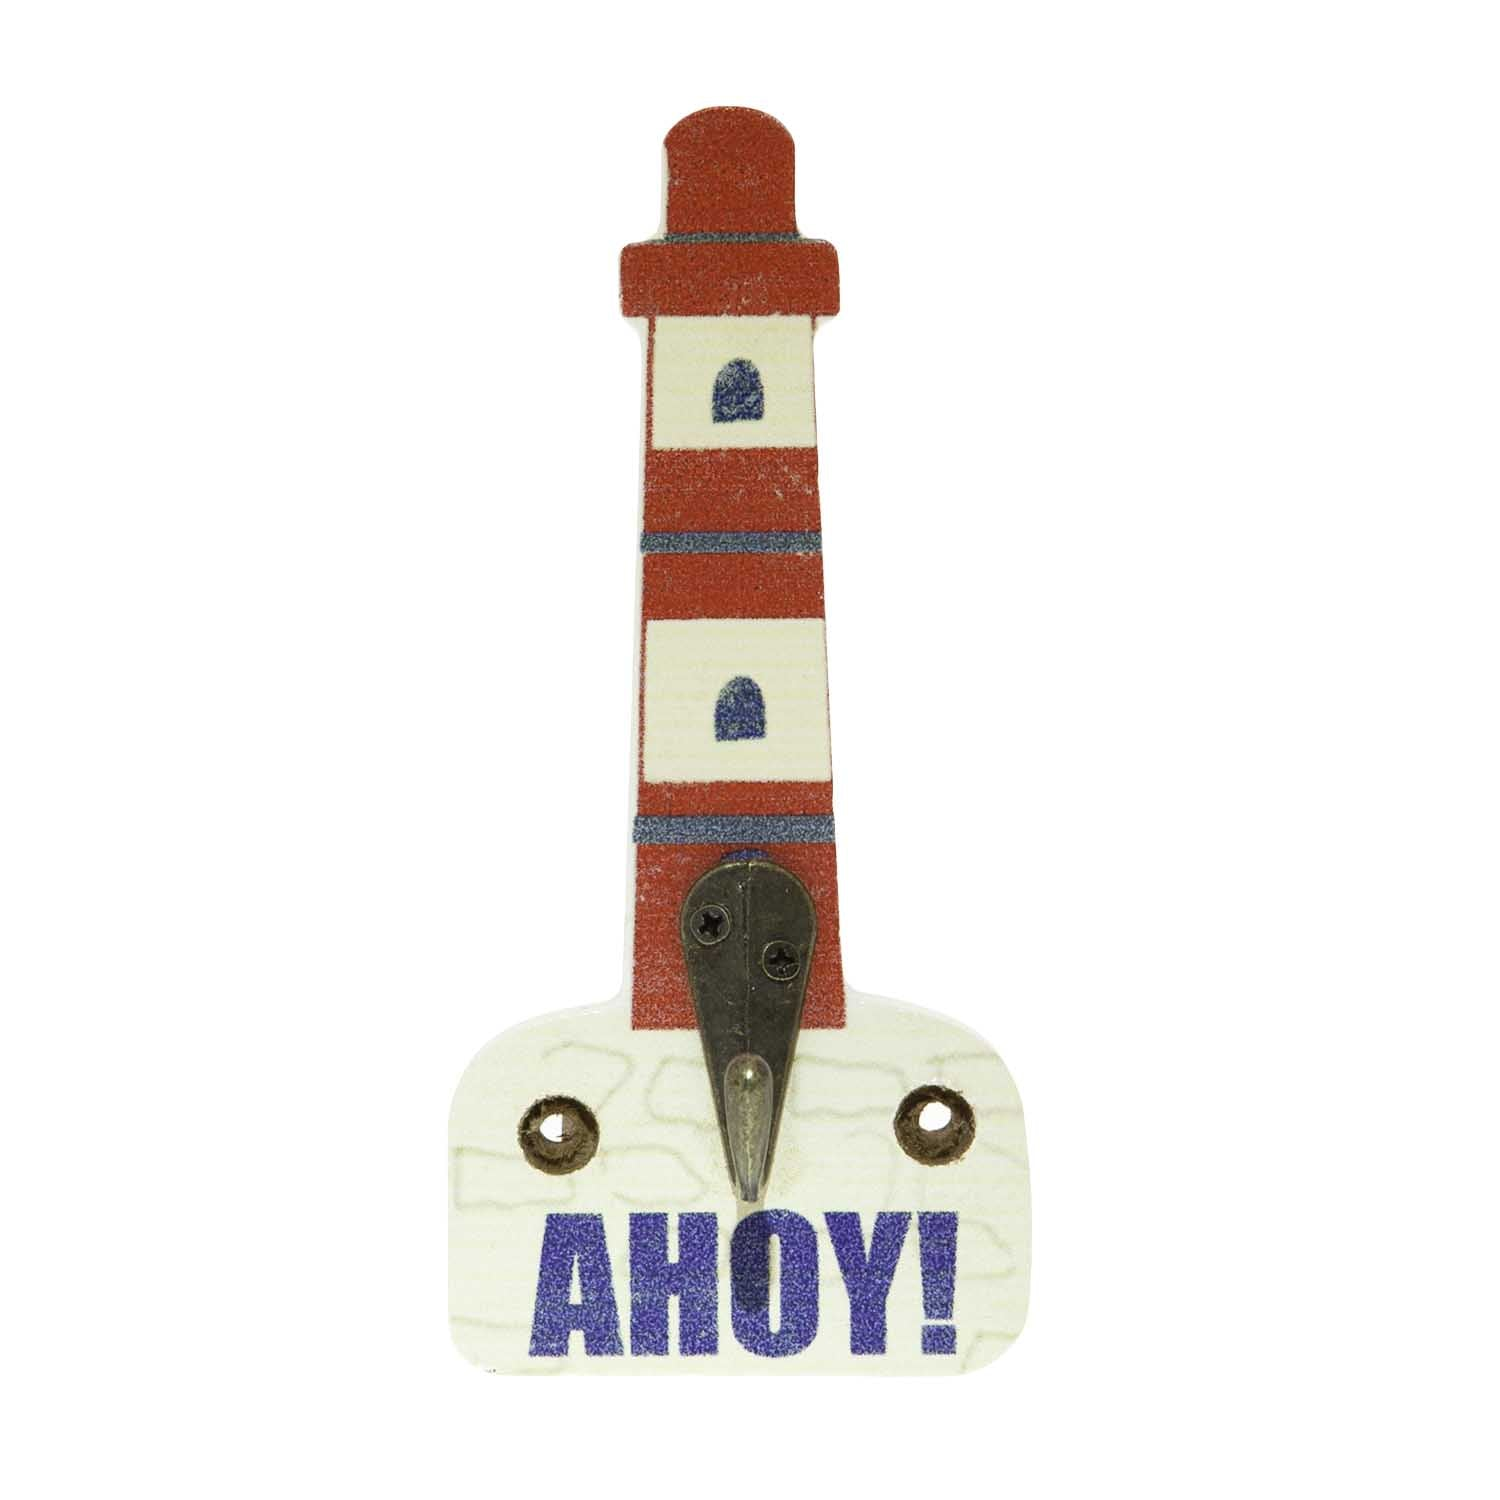 Dog Lover Gifts available at Dog Krazy Gifts – Jill White Rocket68 Ahoy Lighthouse Hook Part Of The Set of 4 available at www.dogkrazygifts.co.uk